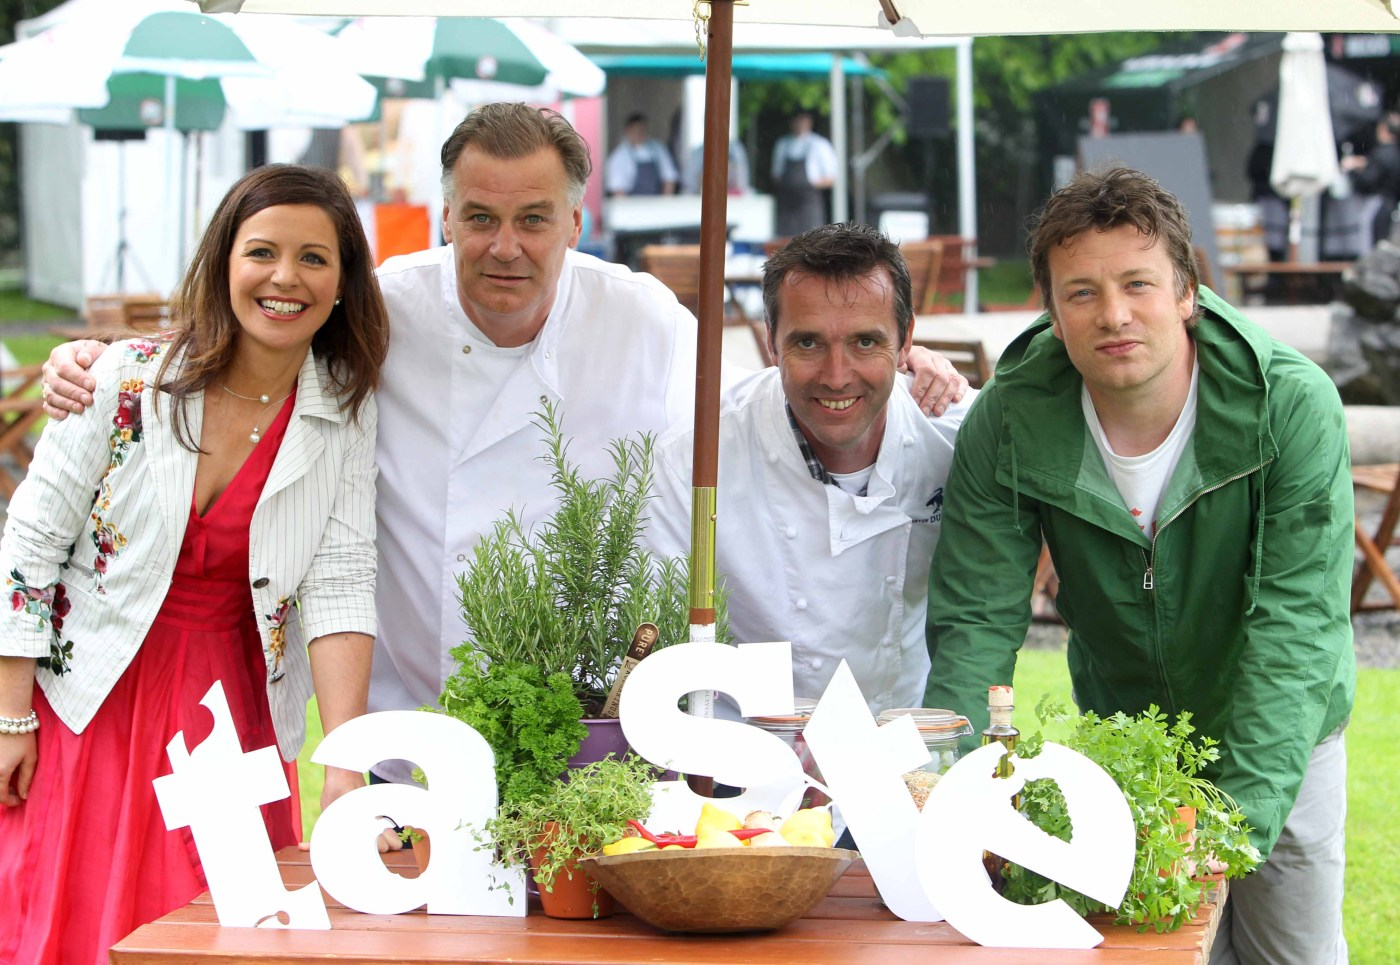 Catherine, Derry, Kevin and Jamie kicking off Taste of Dublin 2012